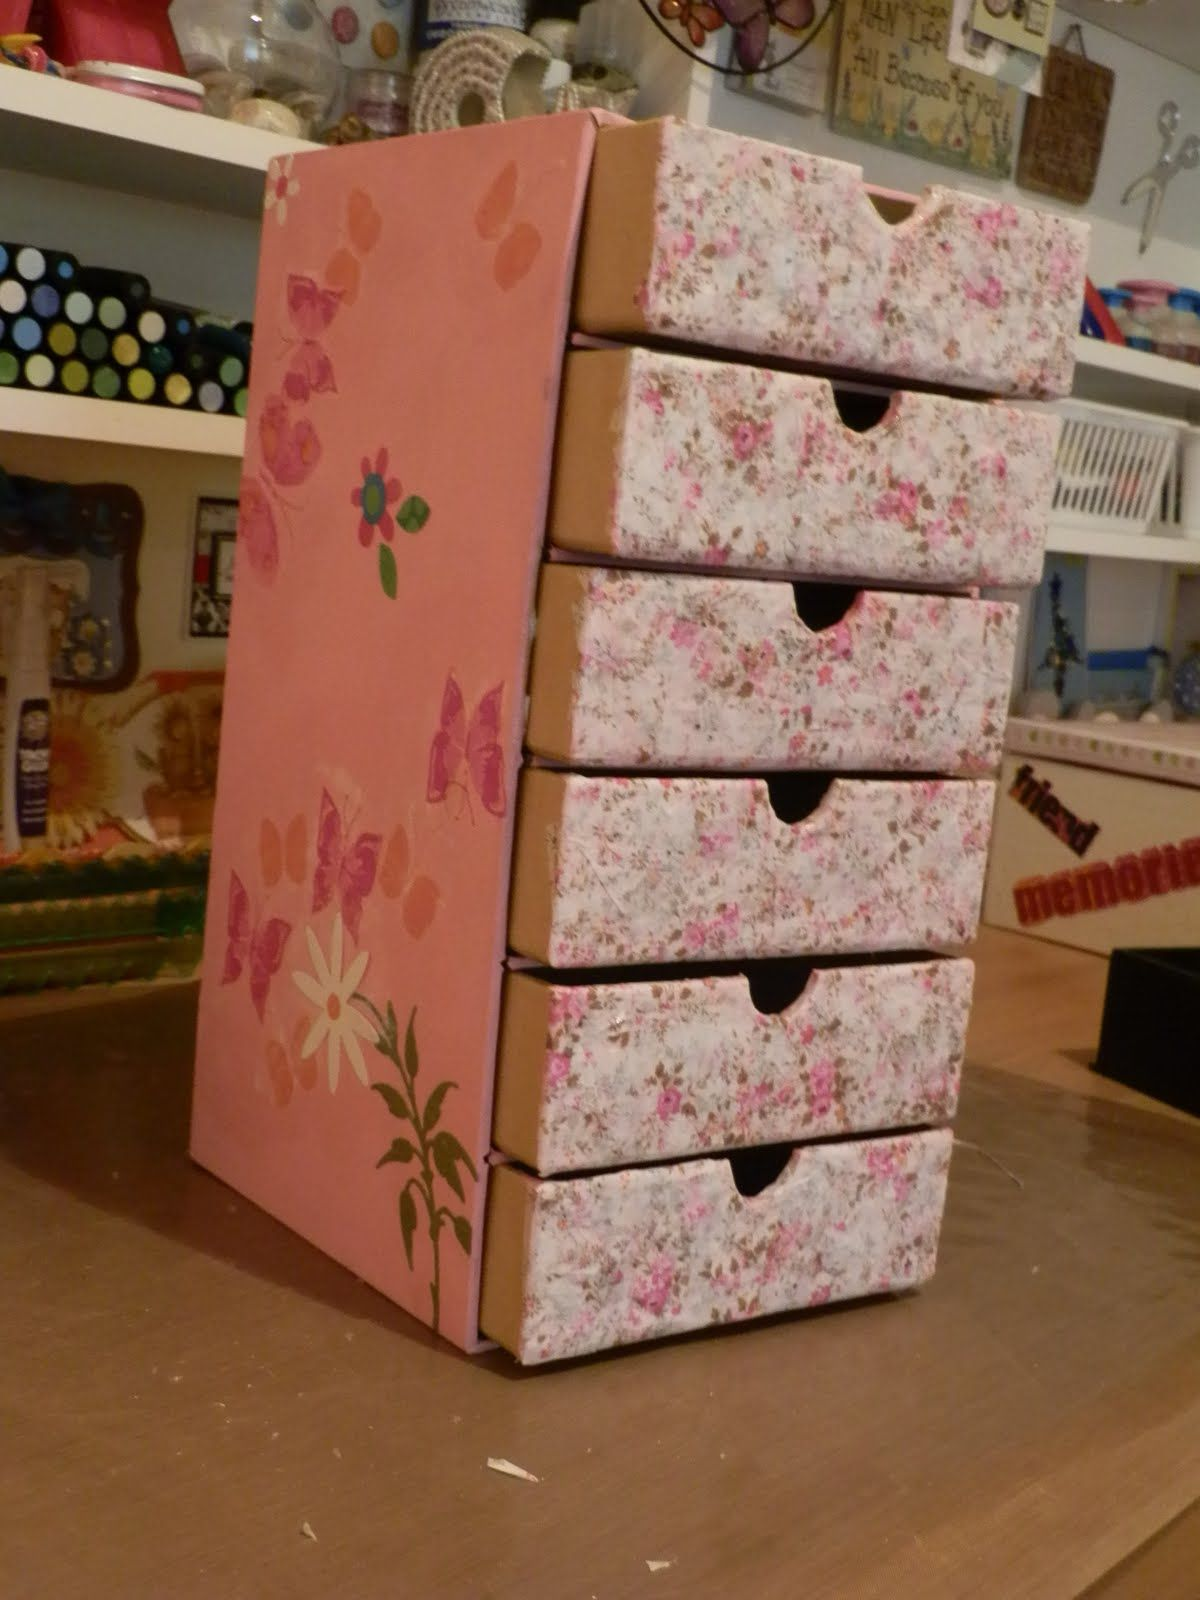 More decopatch and decoupage Cardboard box storage